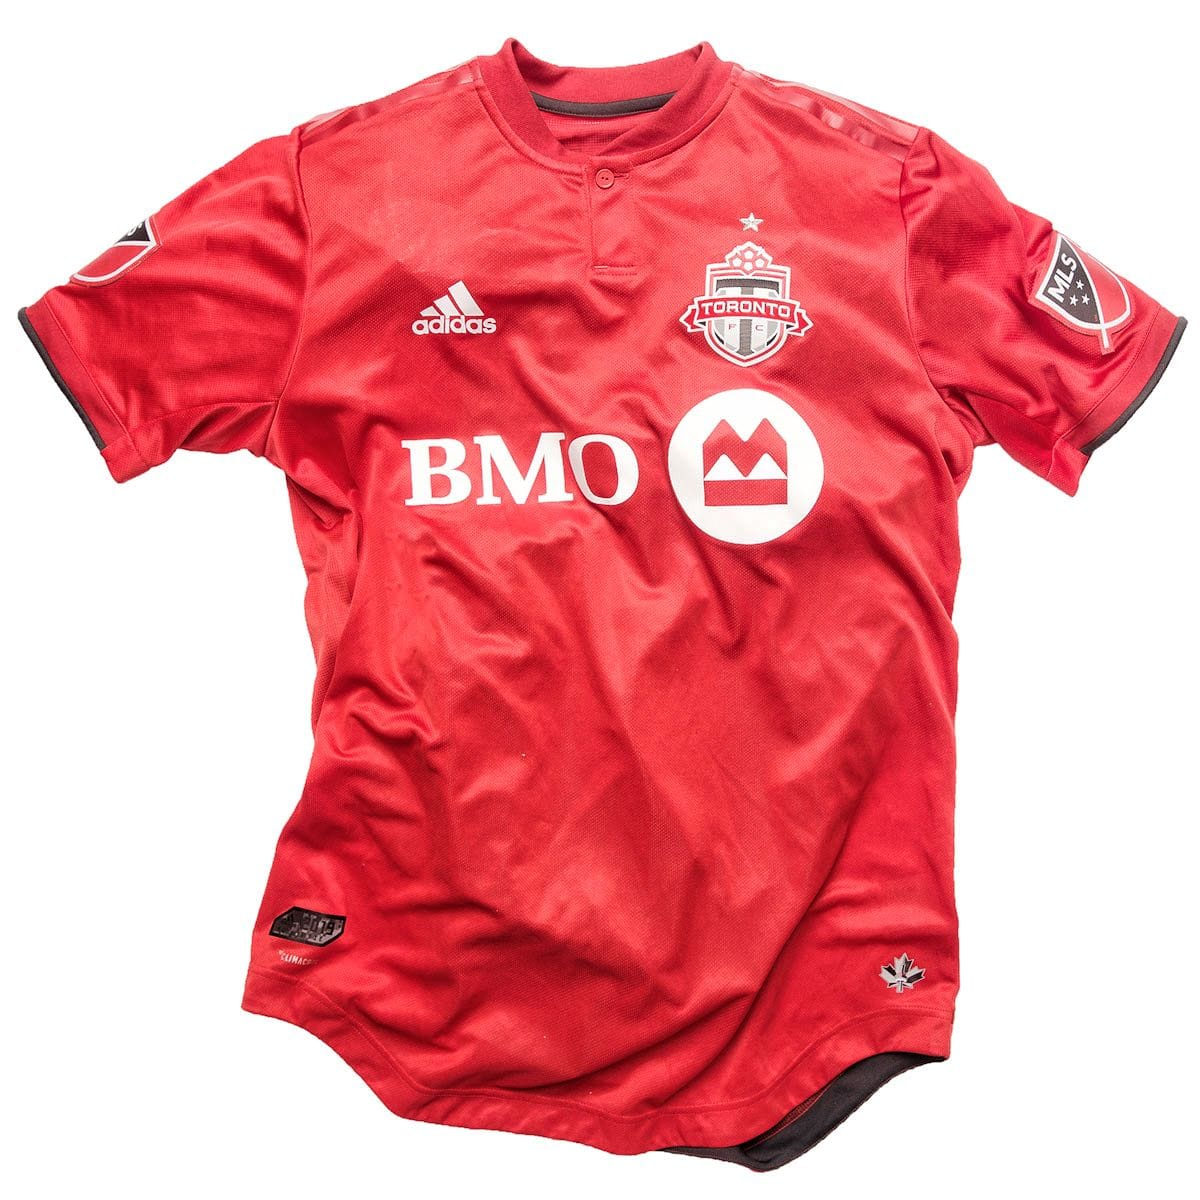 check out 505bb b657e 2019 Toronto FC Kit | Toronto FC